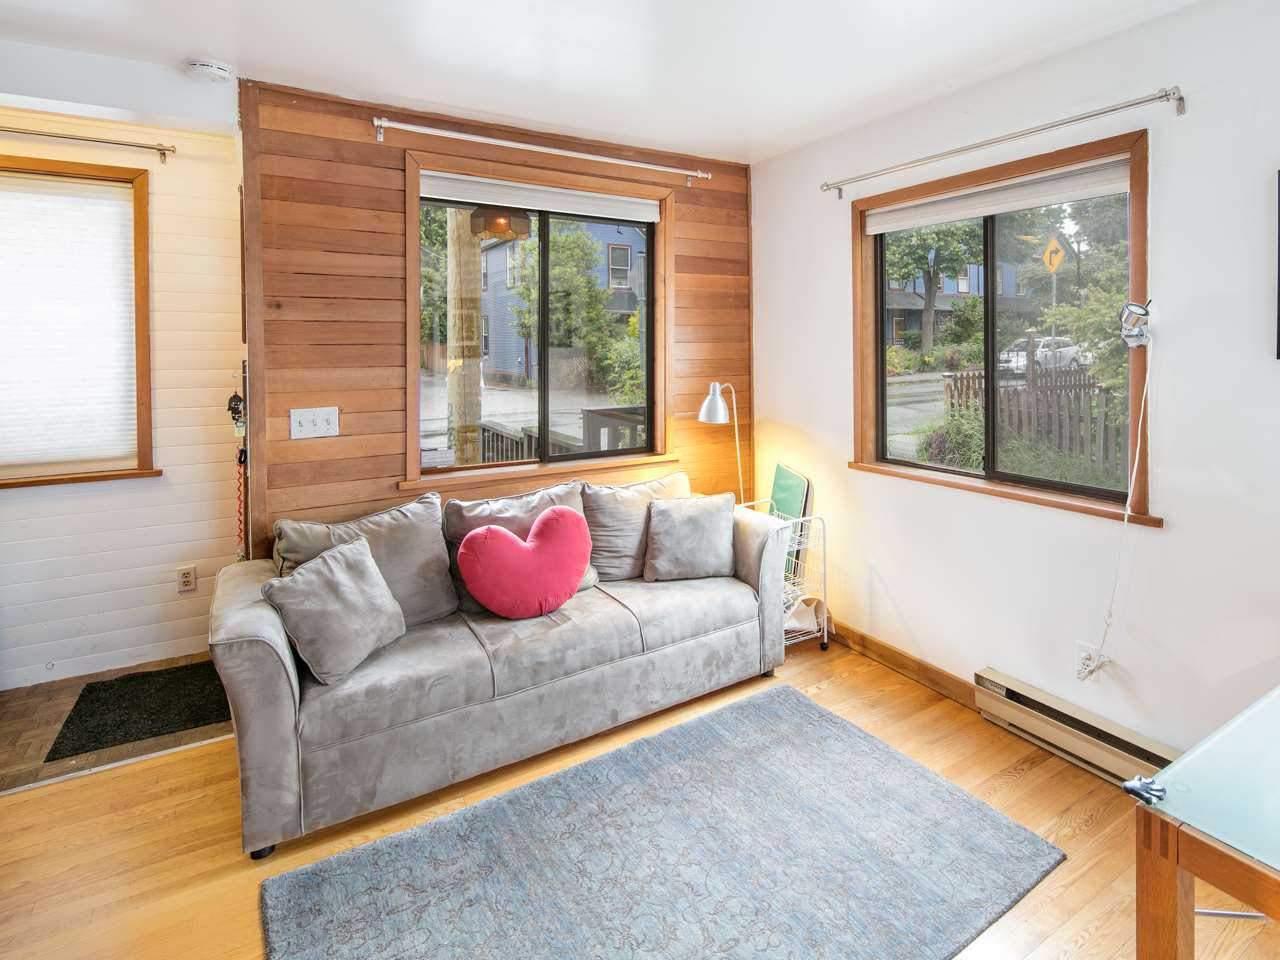 "Photo 2: 730 HAWKS Avenue in Vancouver: Mount Pleasant VE Townhouse for sale in ""Hawks Green"" (Vancouver East)  : MLS(r) # R2179039"